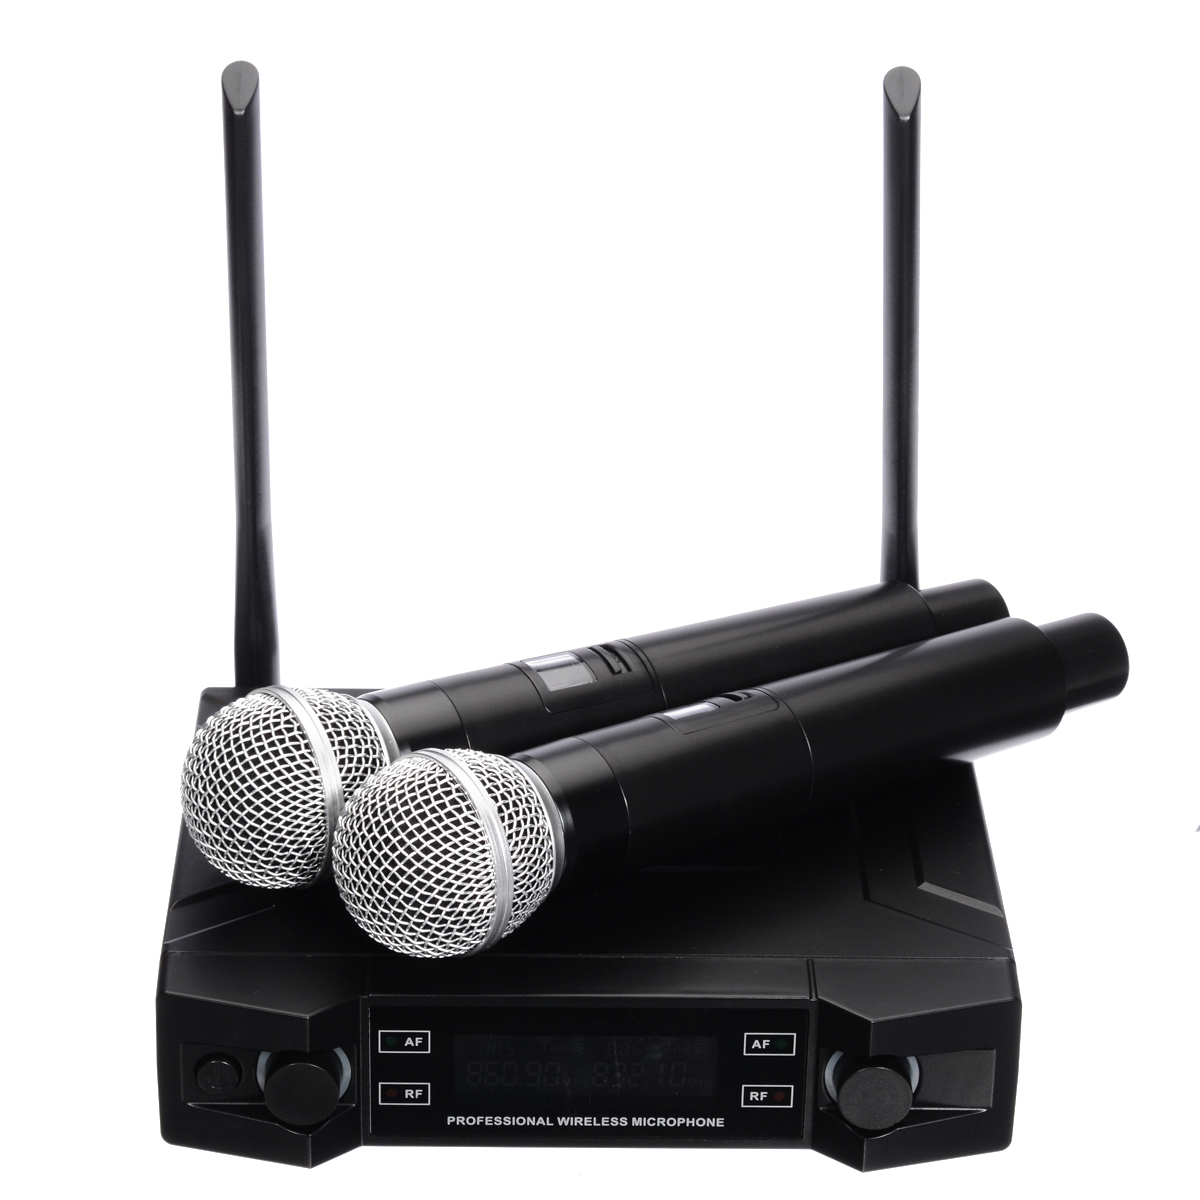 Professional Karaoke UHF Wireless Microphone System 2 Channel 2 Handheld  Microphone 620MHZ-950MHZProfessional Karaoke UHF Wireless Microphone System 2 Channel 2 Handheld  Microphone 620MHZ-950MHZ